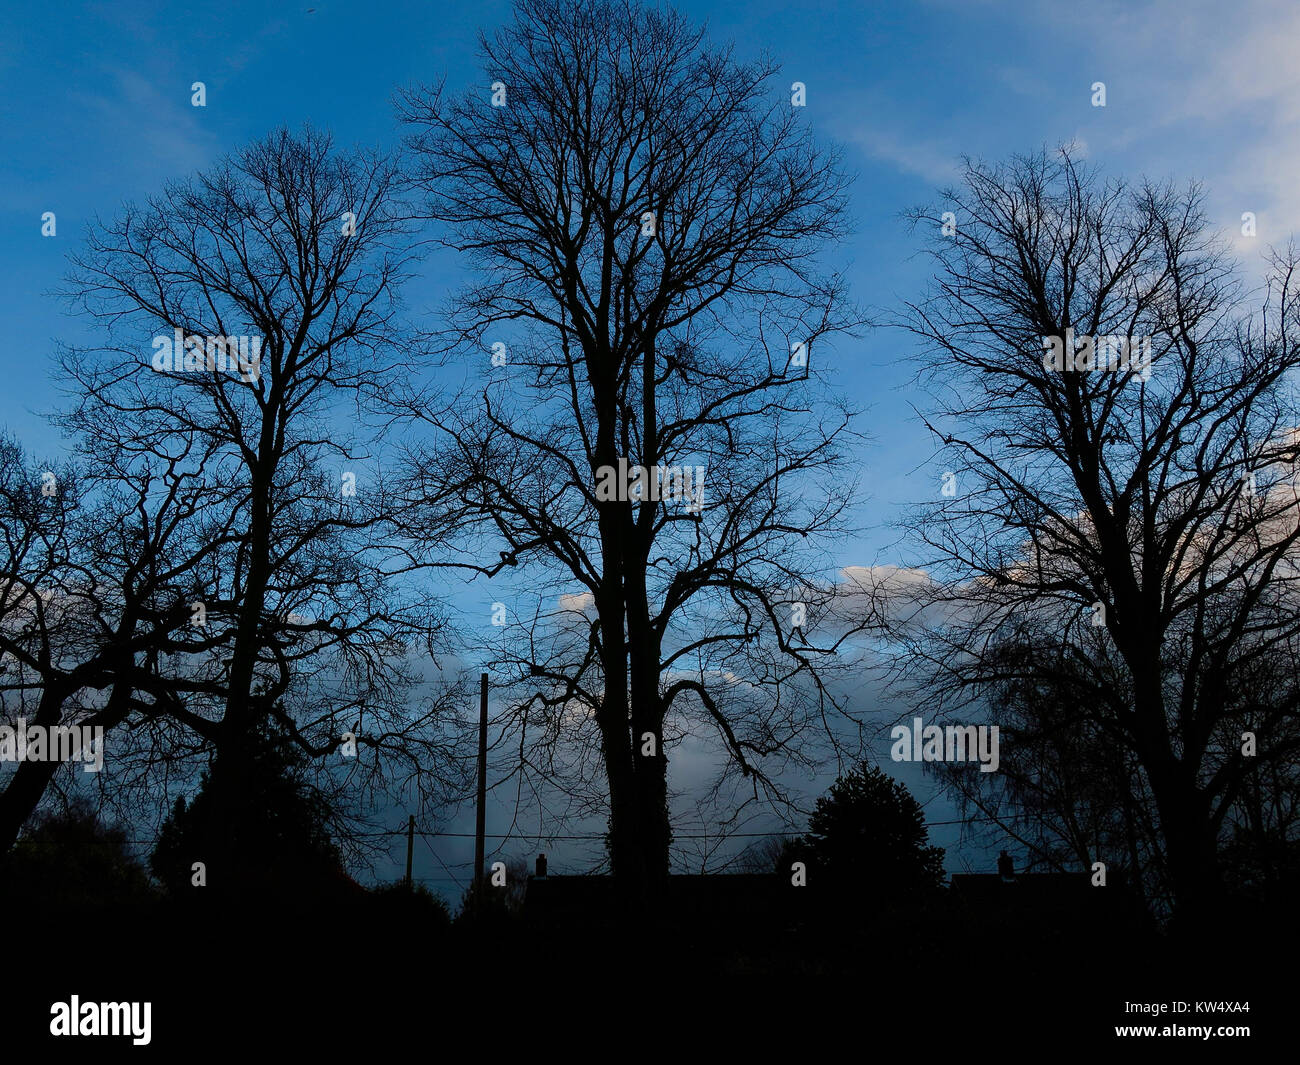 Winter trees in fading afternoon light. Salhouse, Norfolk, December 2017. - Stock Image